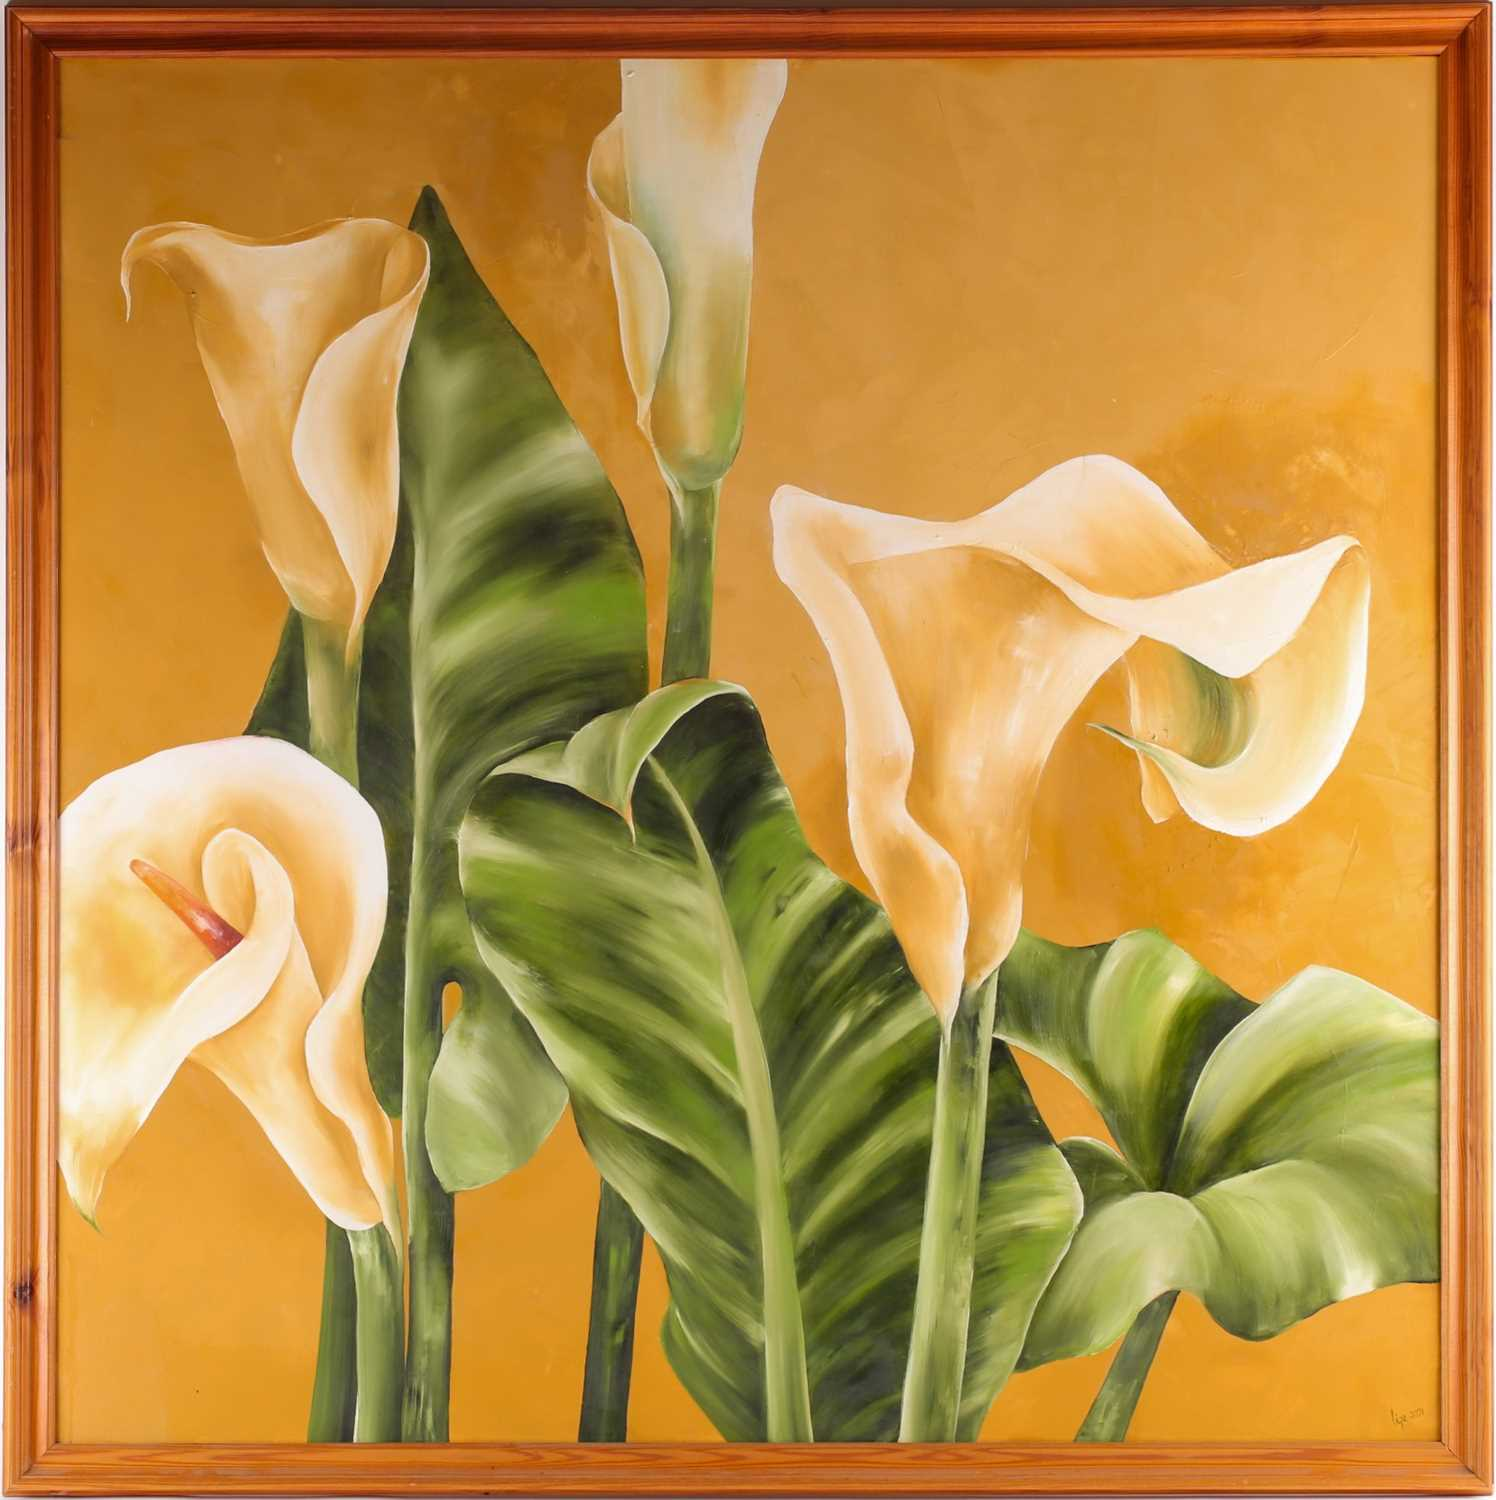 Lize-Maria Van Der Merwe, Arum Lilies, oil on cancas, signed and dated 2001 lower right, 99 cm x 100